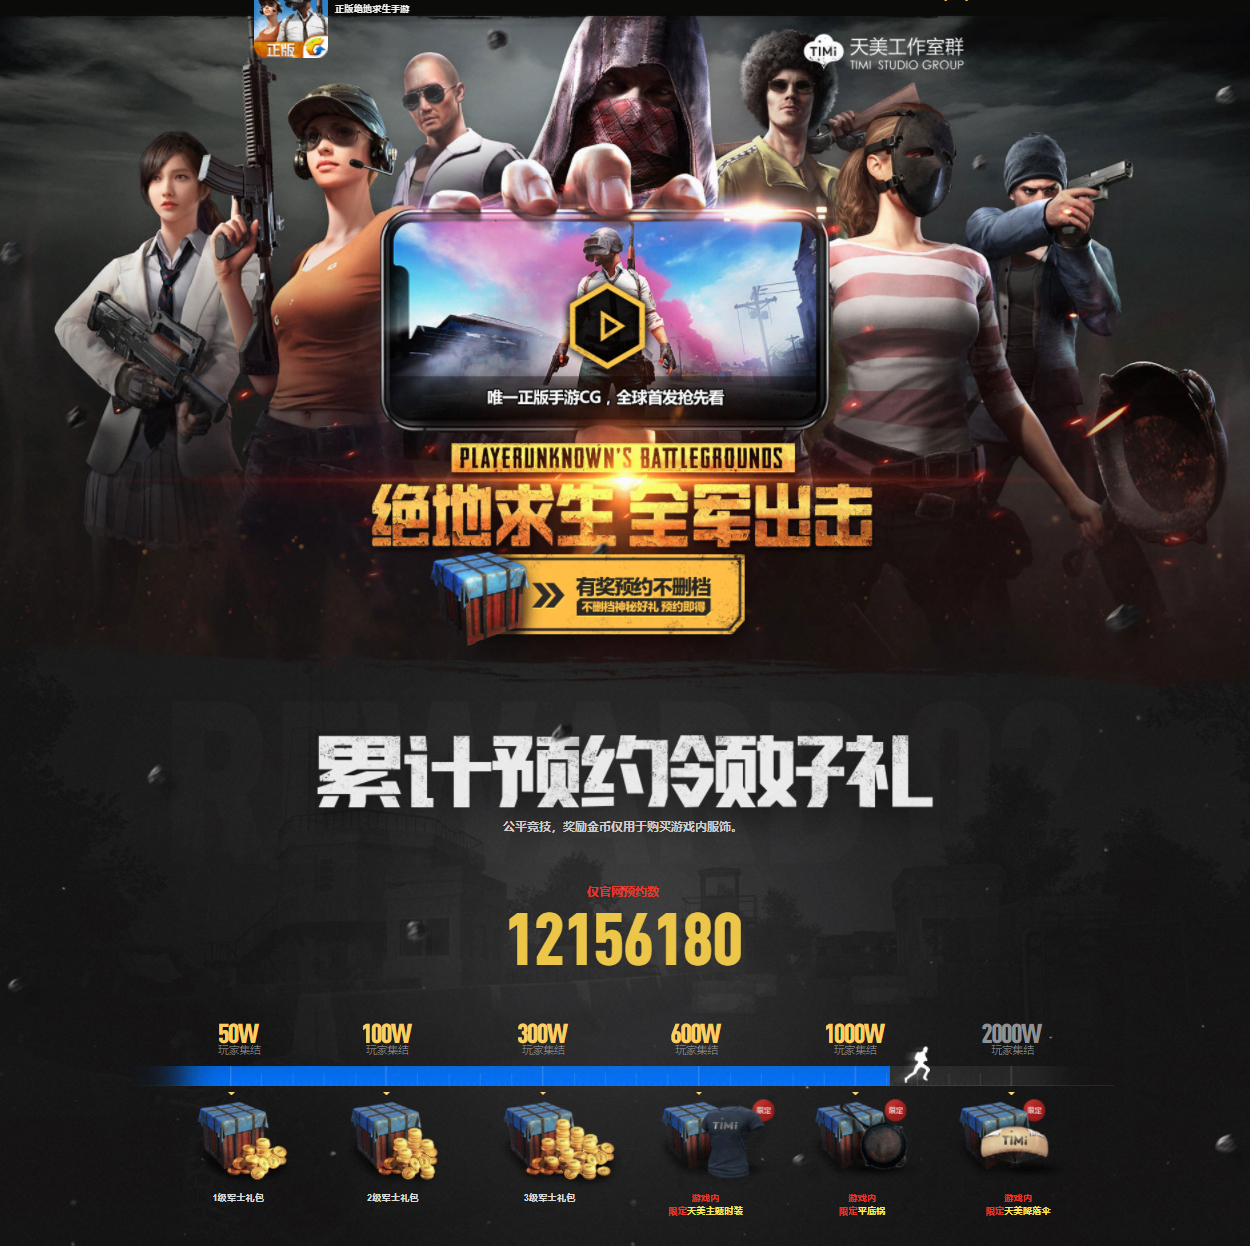 The official mobile version of PlayerUnknown's BattleGrounds is also being published by Tencent with over 12M players already pre-registering for the game.